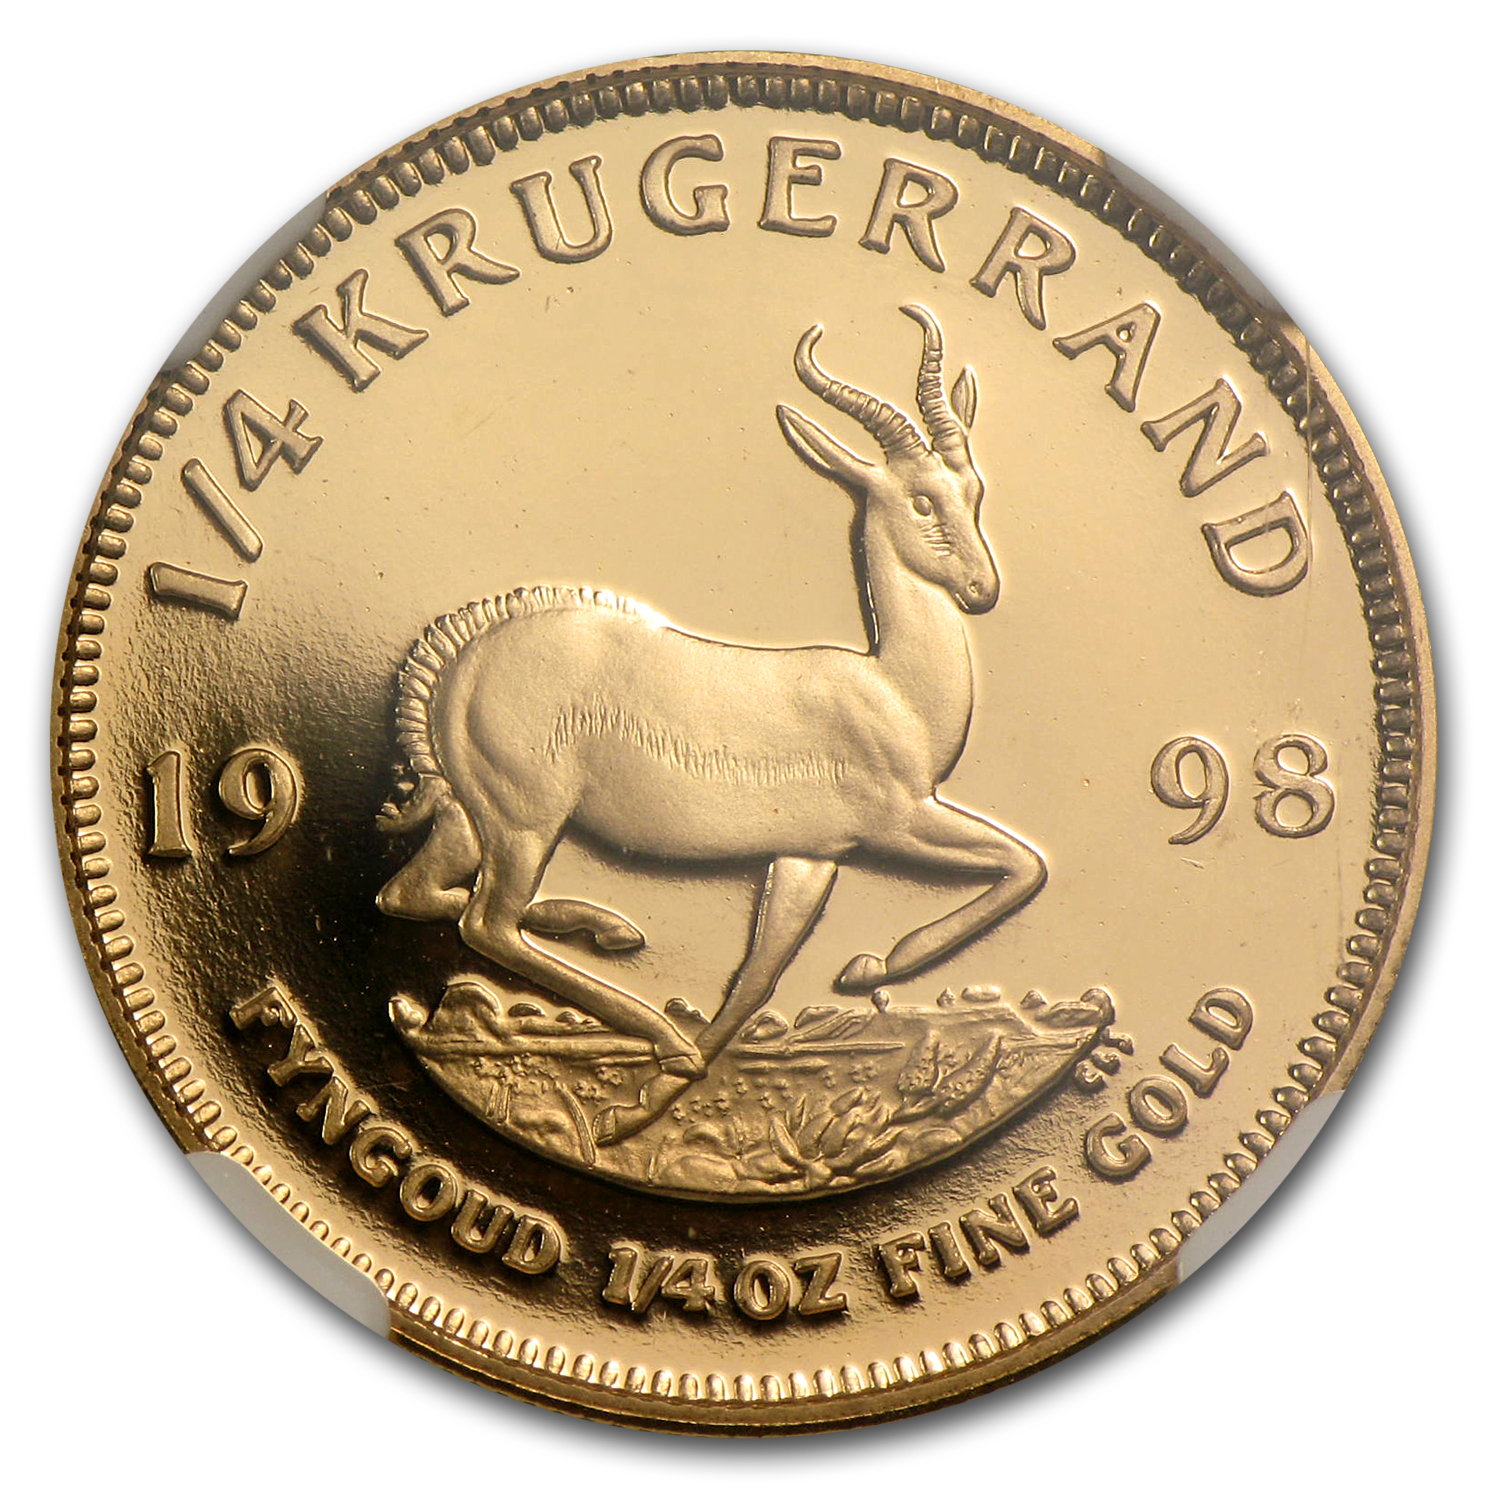 1998 South Africa 1/4 oz Gold Krugerrand PF-69 NGC